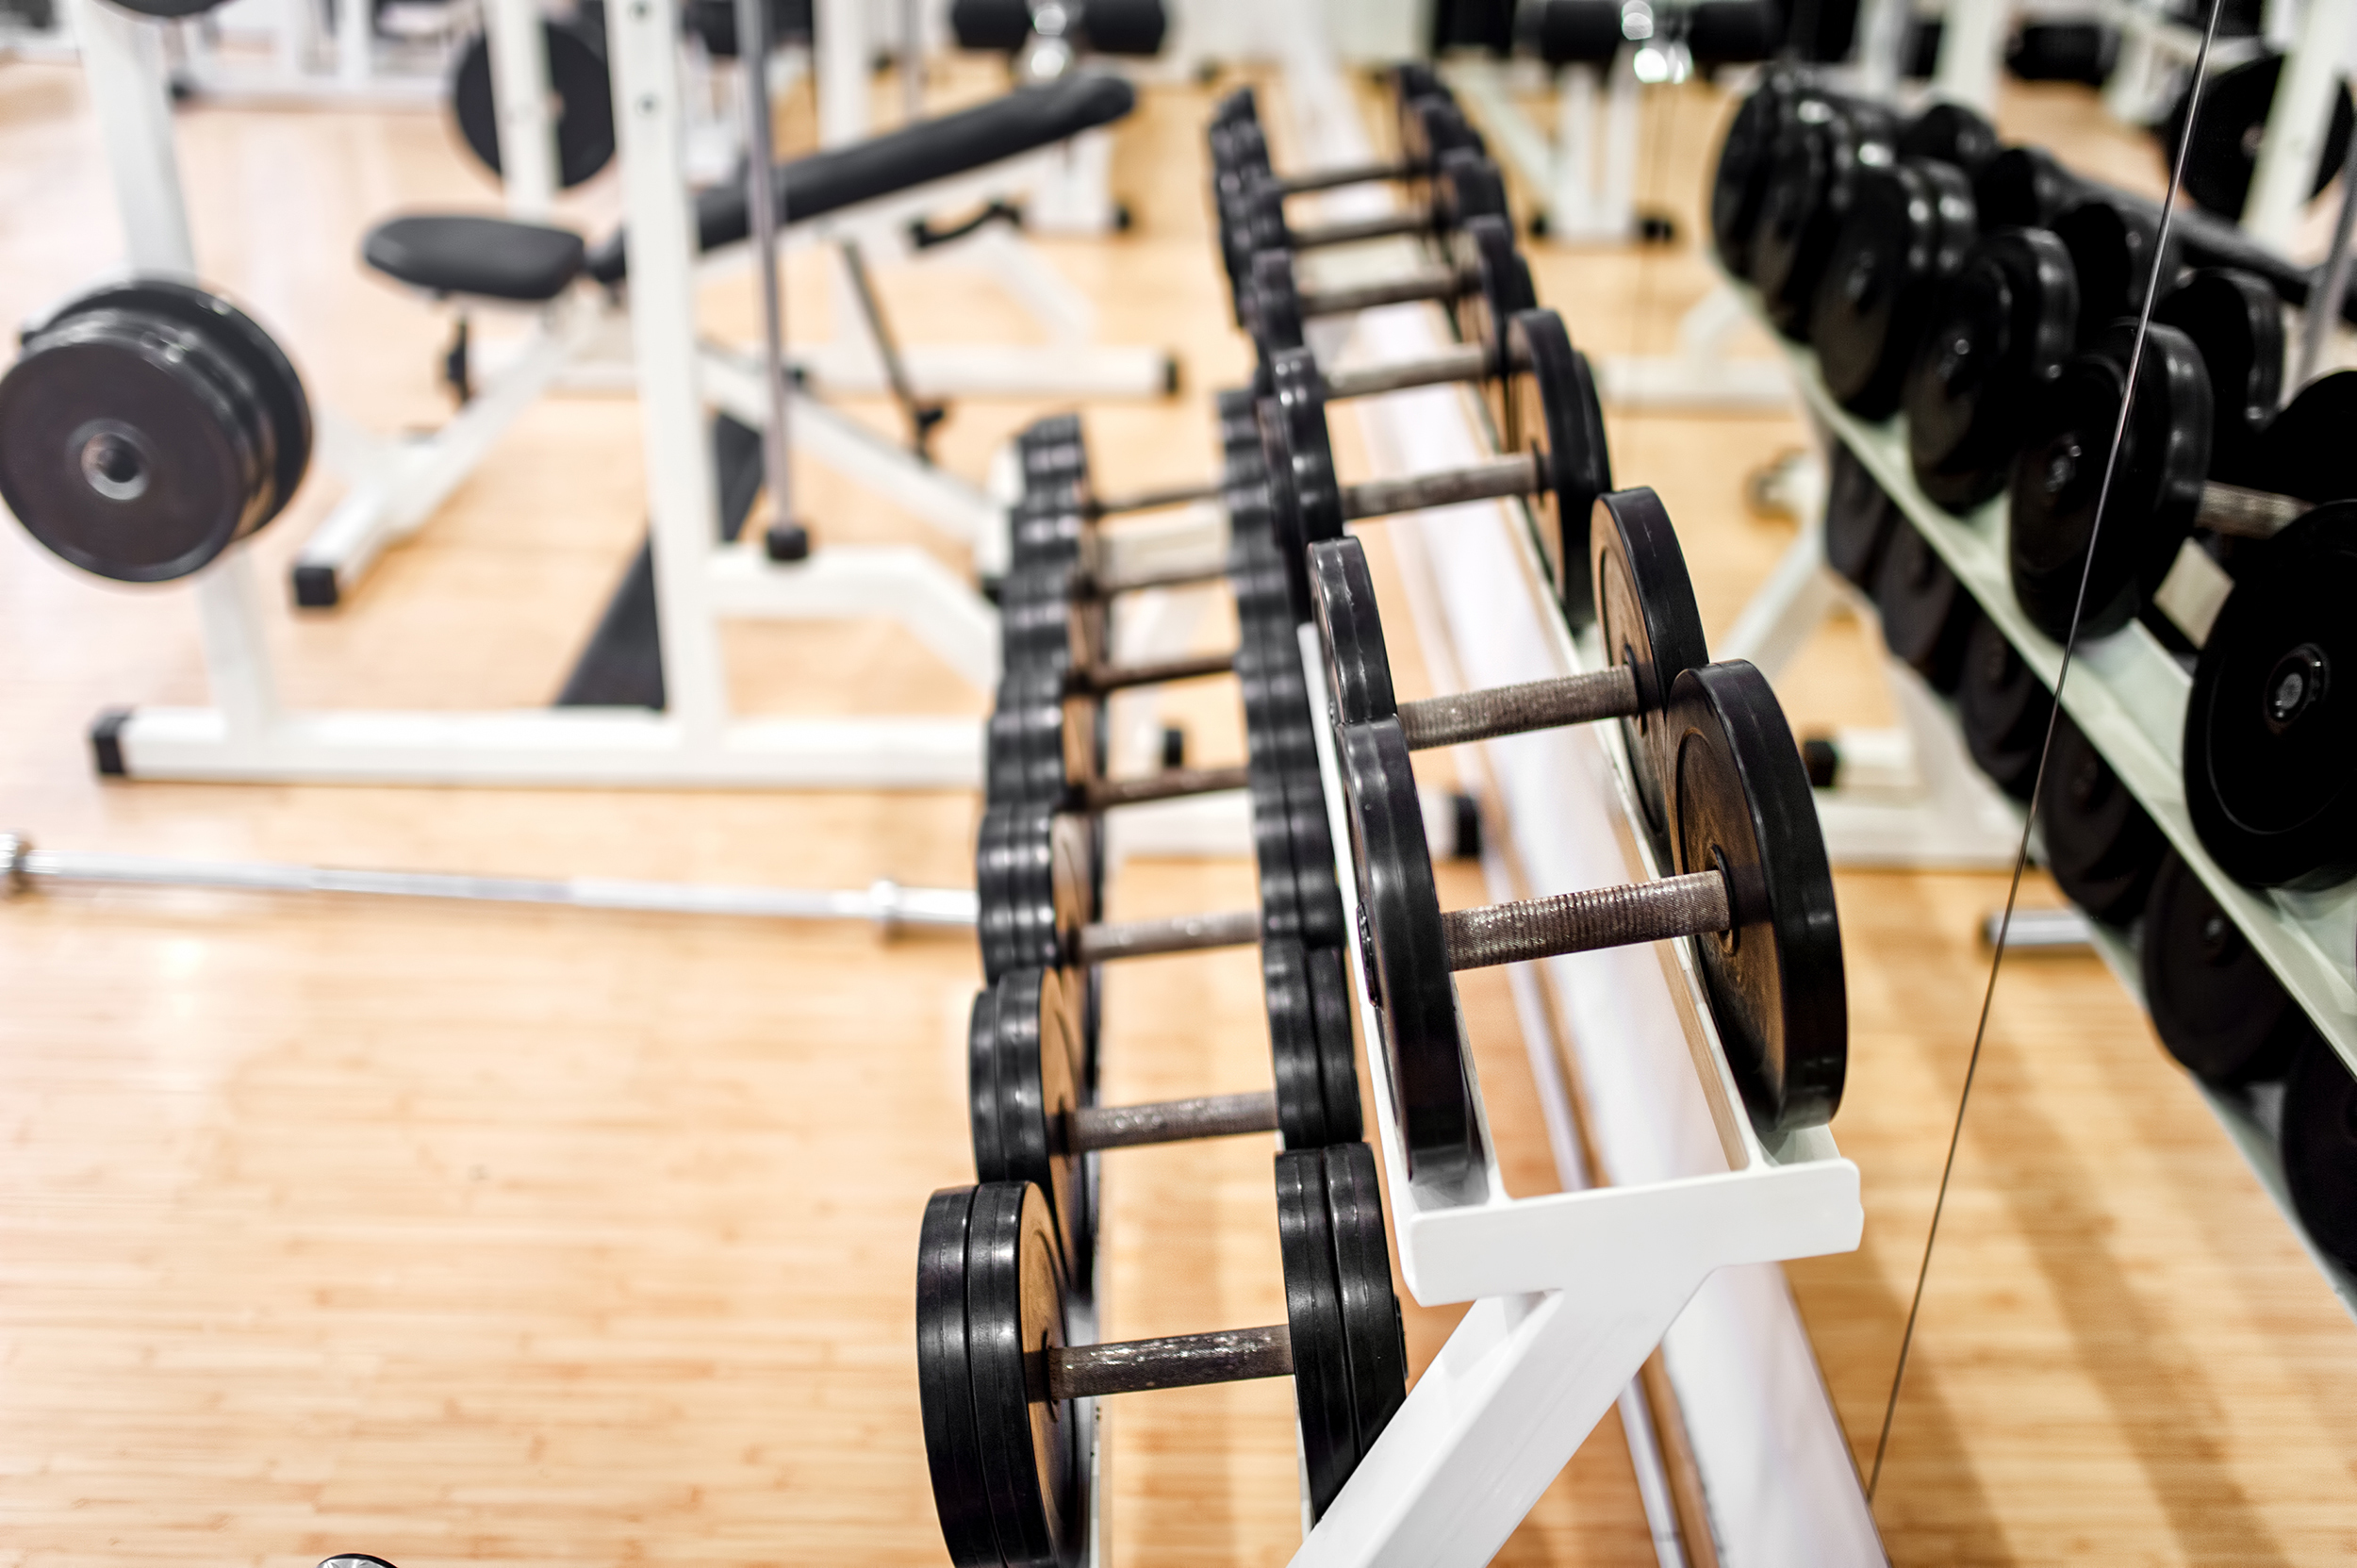 designing an effective training program to improve physiological capacity of an athlete Designing and implementing training programs summary 522  training program to improve performance, taking into  and skills assessment are required to help plan an effective training.